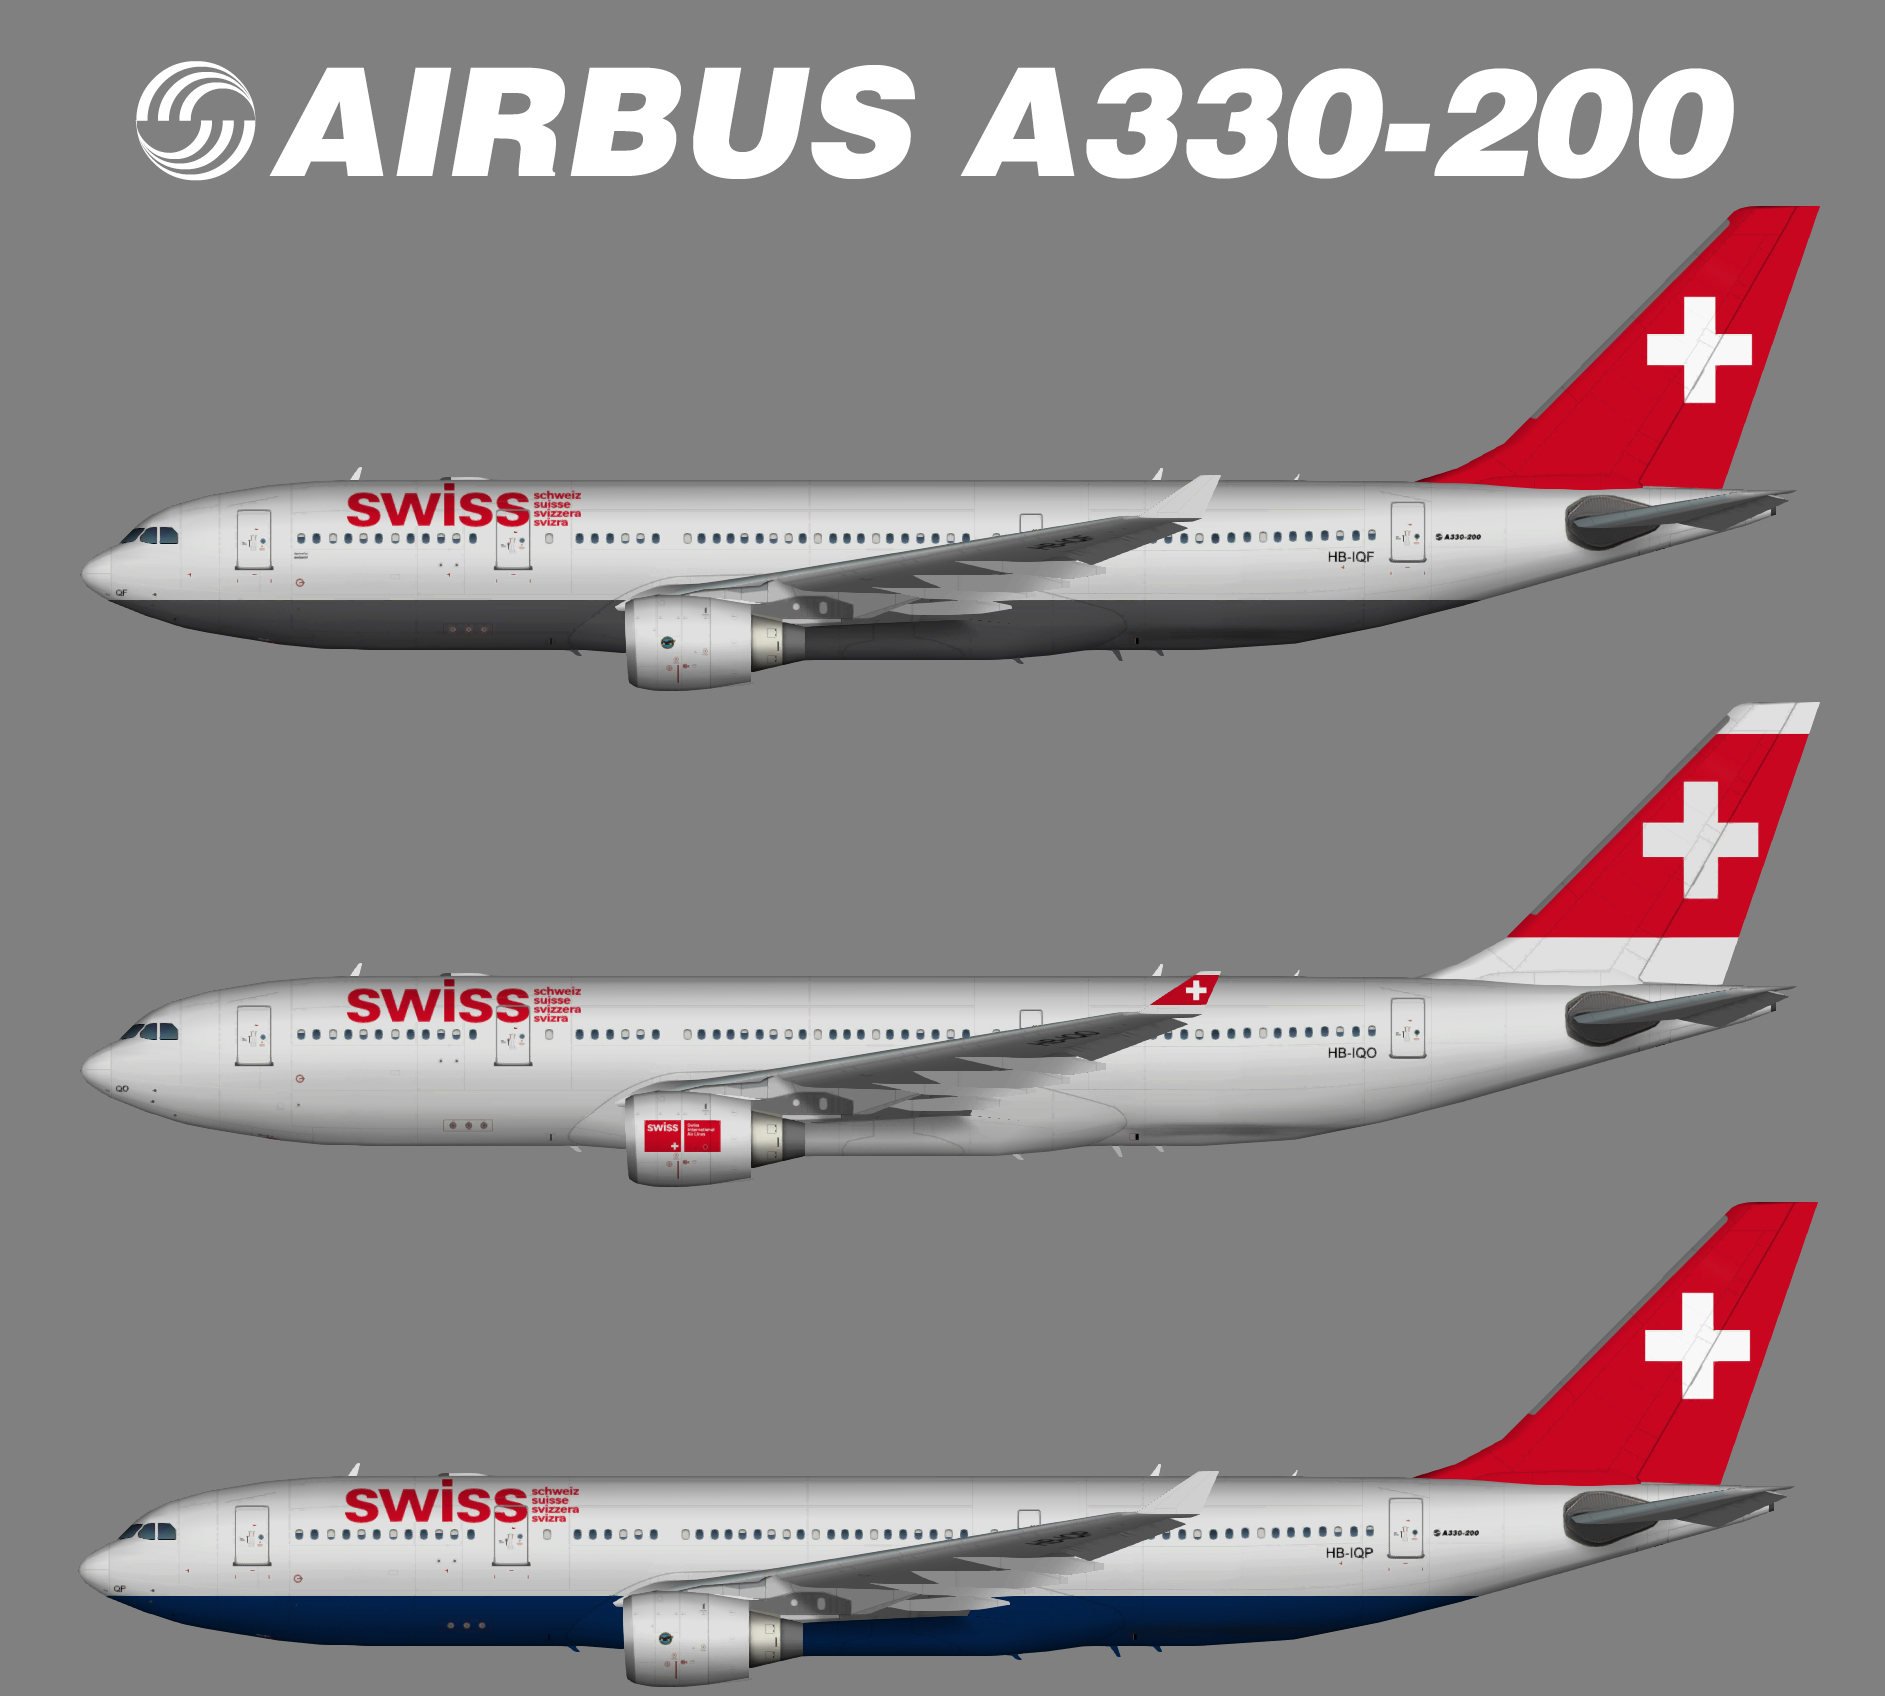 Swiss Air Lines Airbus A330-200